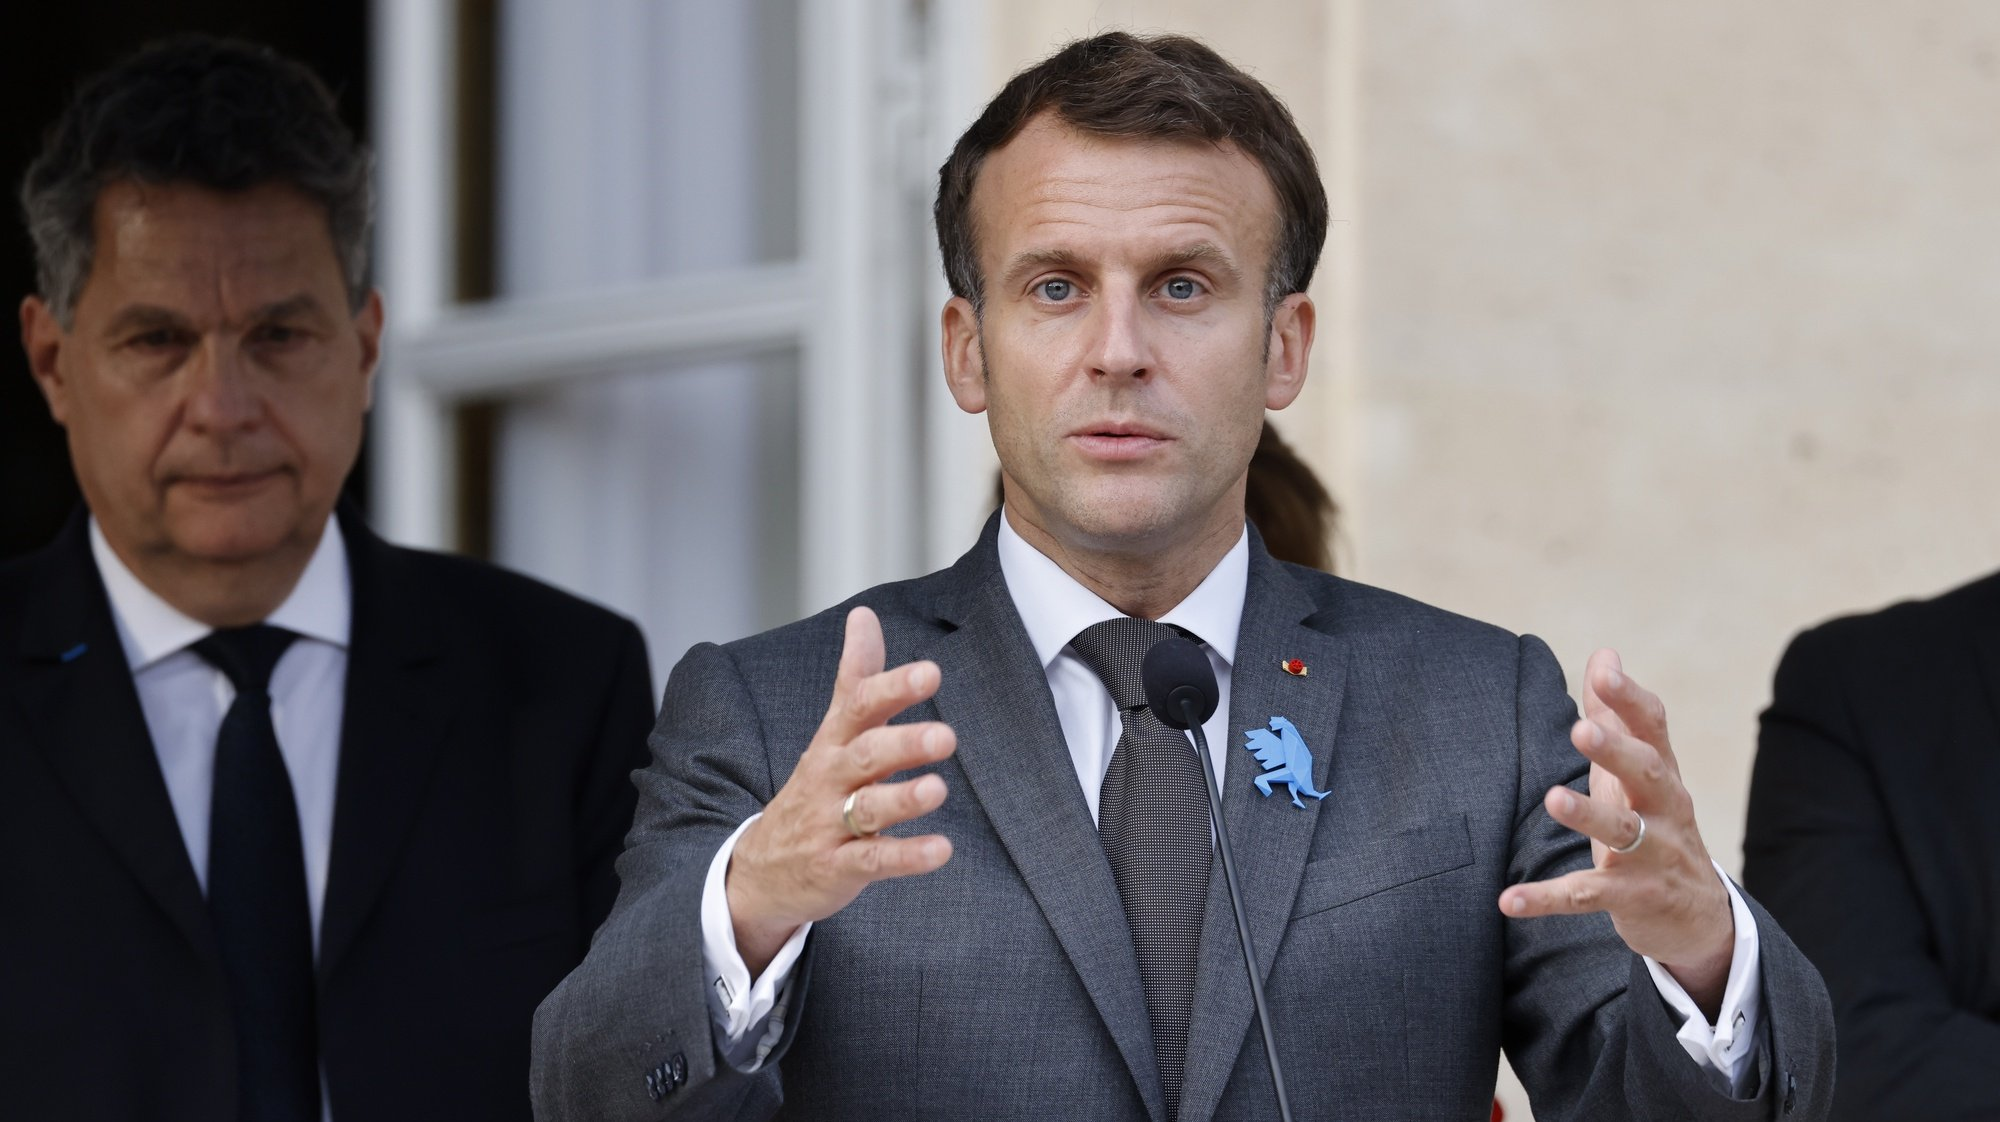 epa09318624 French President Emmanuel Macron delivers a speech during the inauguration ceremony of the 'Made in France' exhibition organised at the Elysee Presidential Palace in Paris, France, 02 July 2021. 126 objects are displayed until July 4, 2021, to highlight the 'made in France' industry.  EPA/LUDOVIC MARIN / POOL  MAXPPP OUT